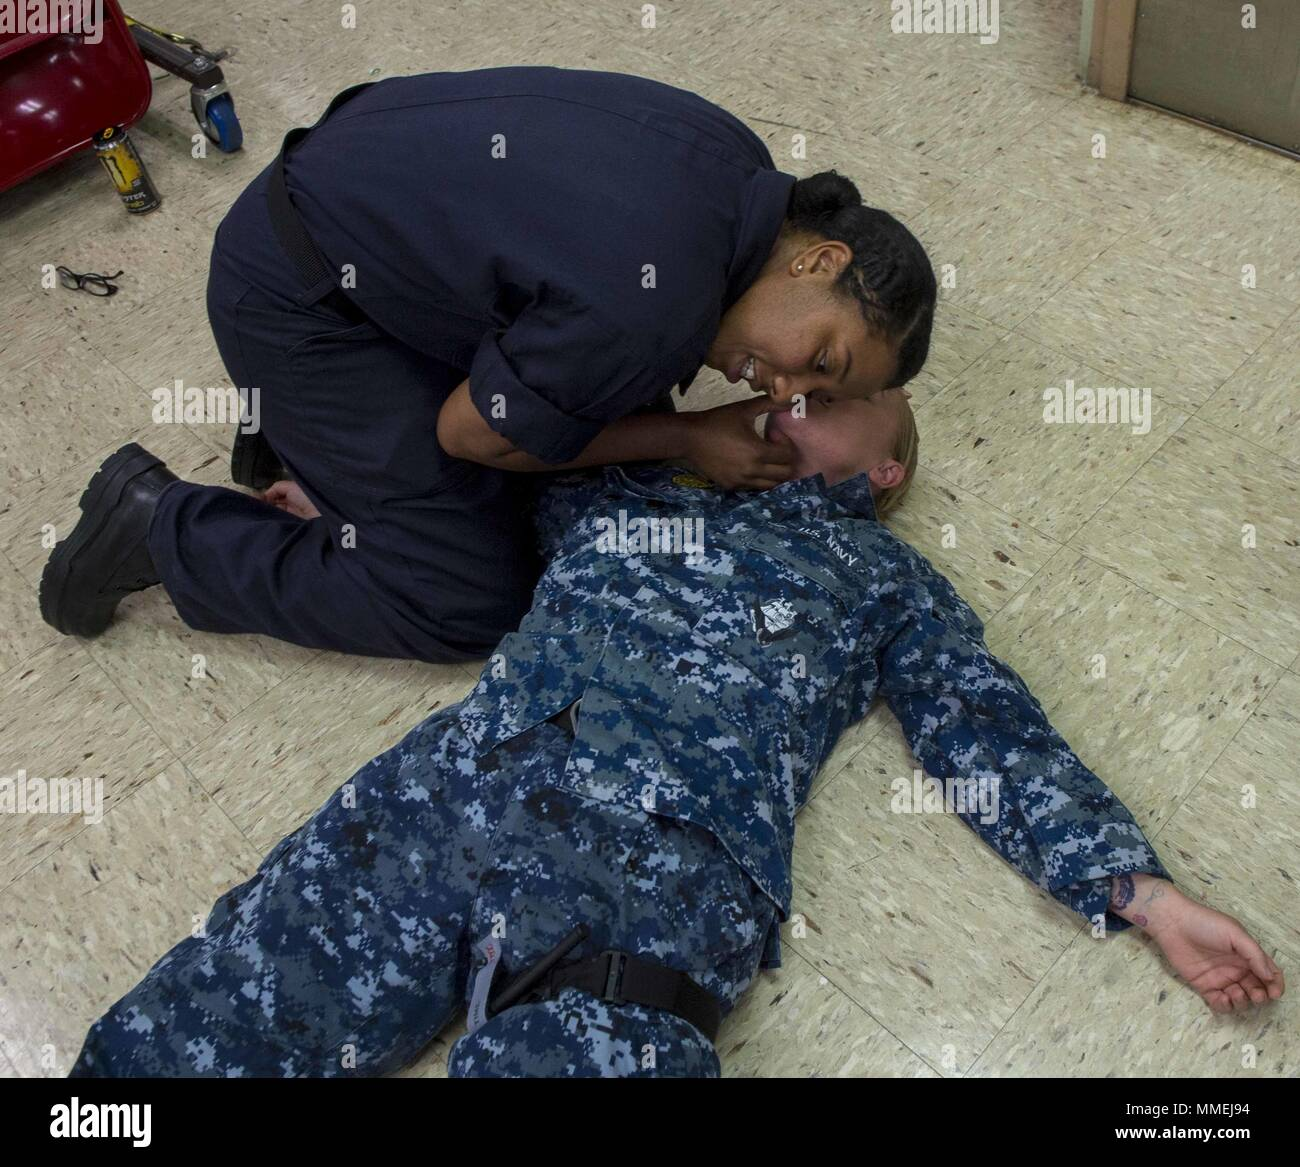 180511-N-NH199-0154 PACIFIC OCEAN (May 11, 2018) Hospital Corpsman 1st Class Stacie Coursey (left), from Fairfield, Calif. assesses a mock patient's airway during a tactical combat casualty care (TCCC) course aboard Military Sealift Command hospital ship USNS Mercy (T-AH 19), May 10, 2018. Mercy is currently deployed in support of Pacific Partnership 2018 (PP18). PP18's mission is to work collectively with host and partner nations to enhance regional interoperability and disaster response capabilities, increase stability and security in the region, and foster new and enduring friendships acros - Stock Image